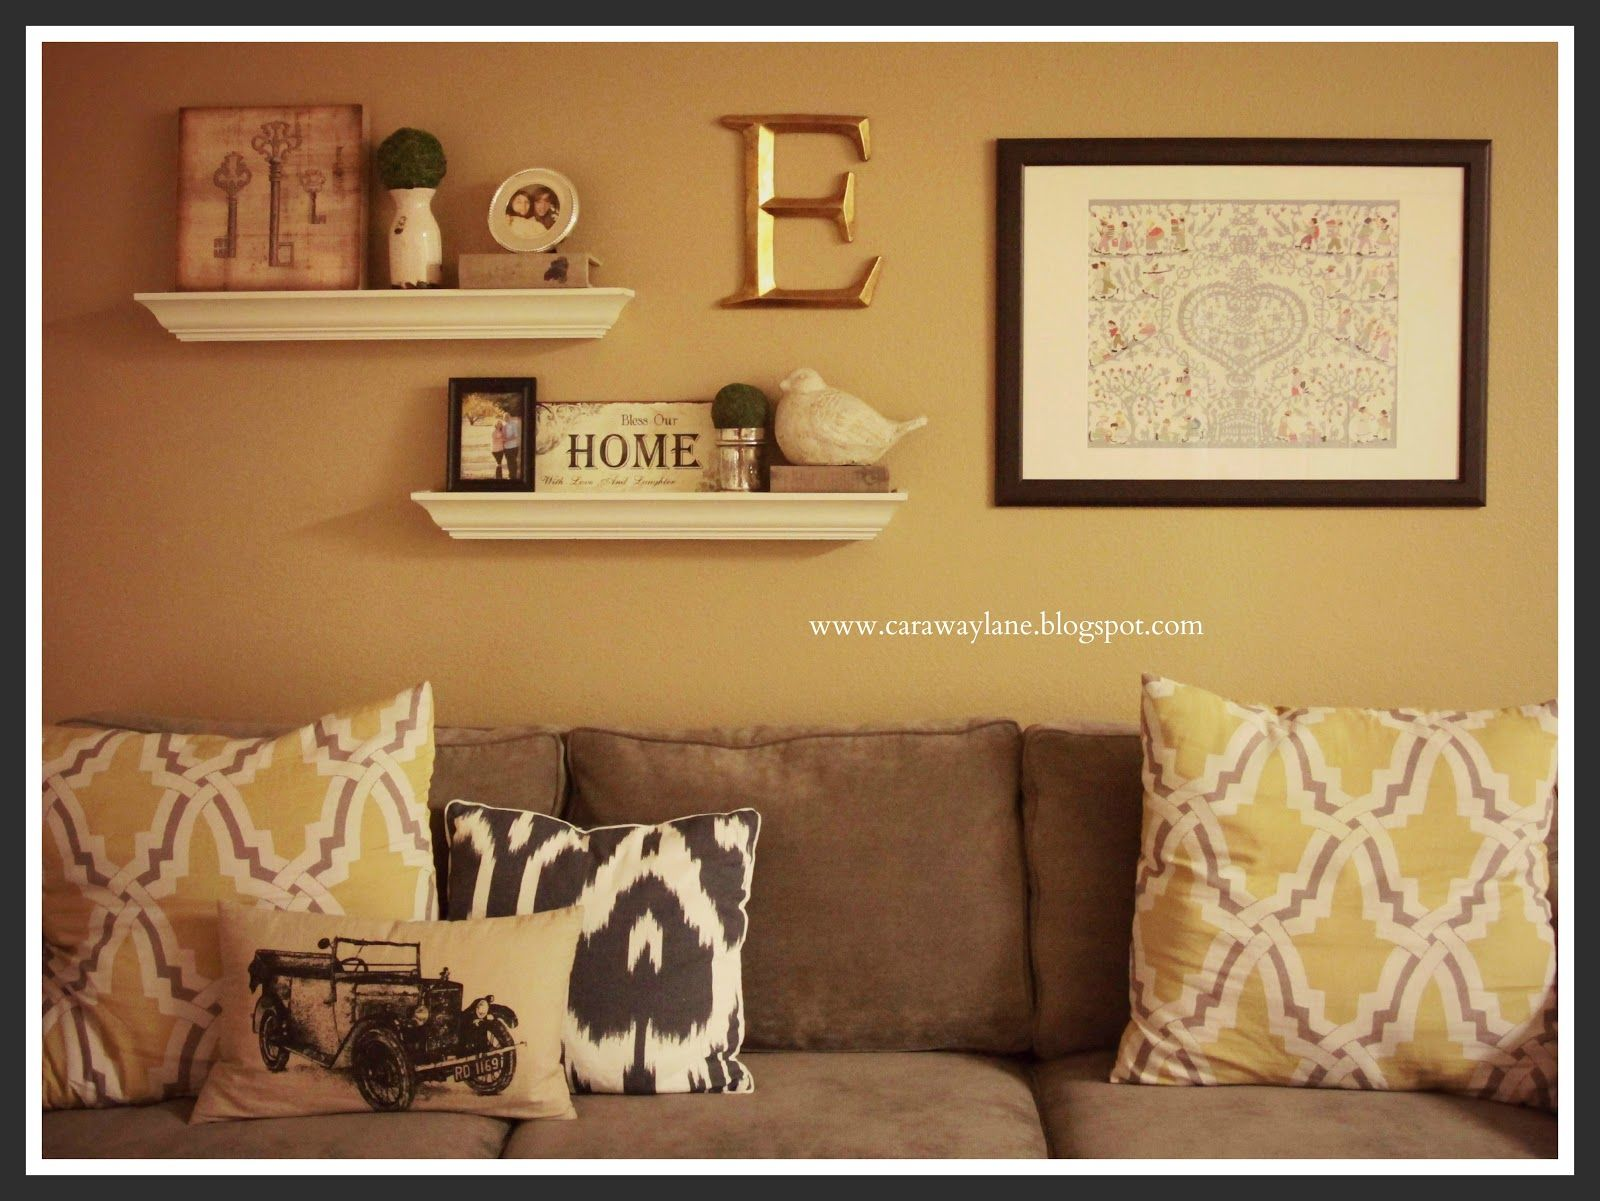 Decorate over a sofa above the couch wall decor future Over the sofa wall decor ideas